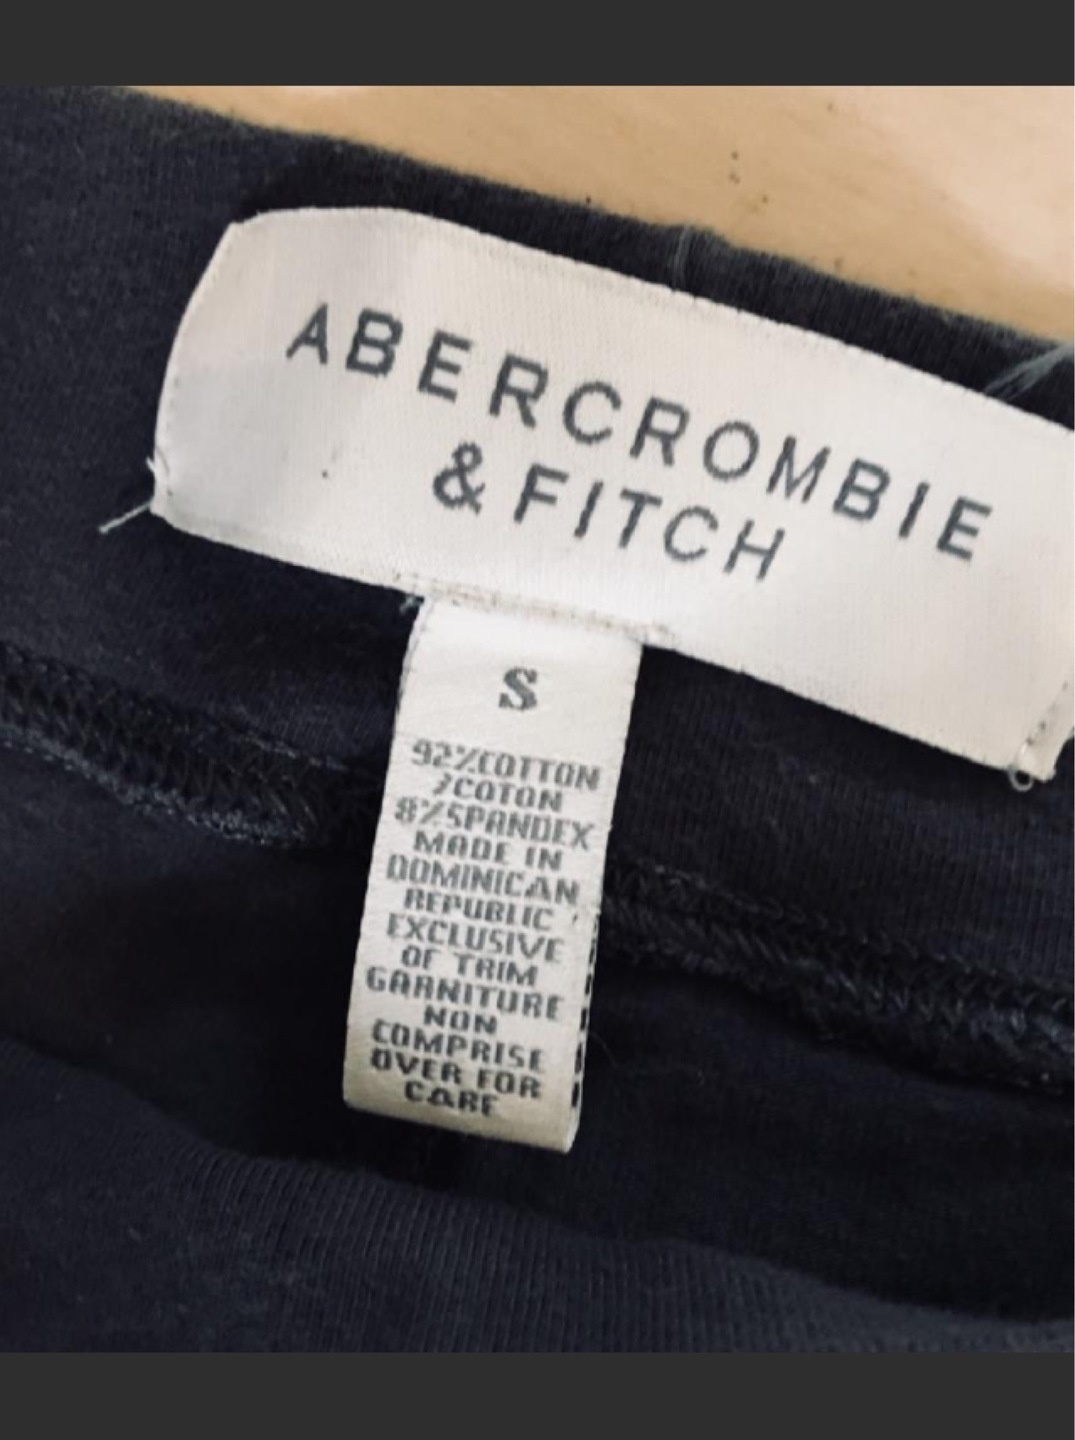 Damers  - ABERCROMBIE & FITCH photo 1